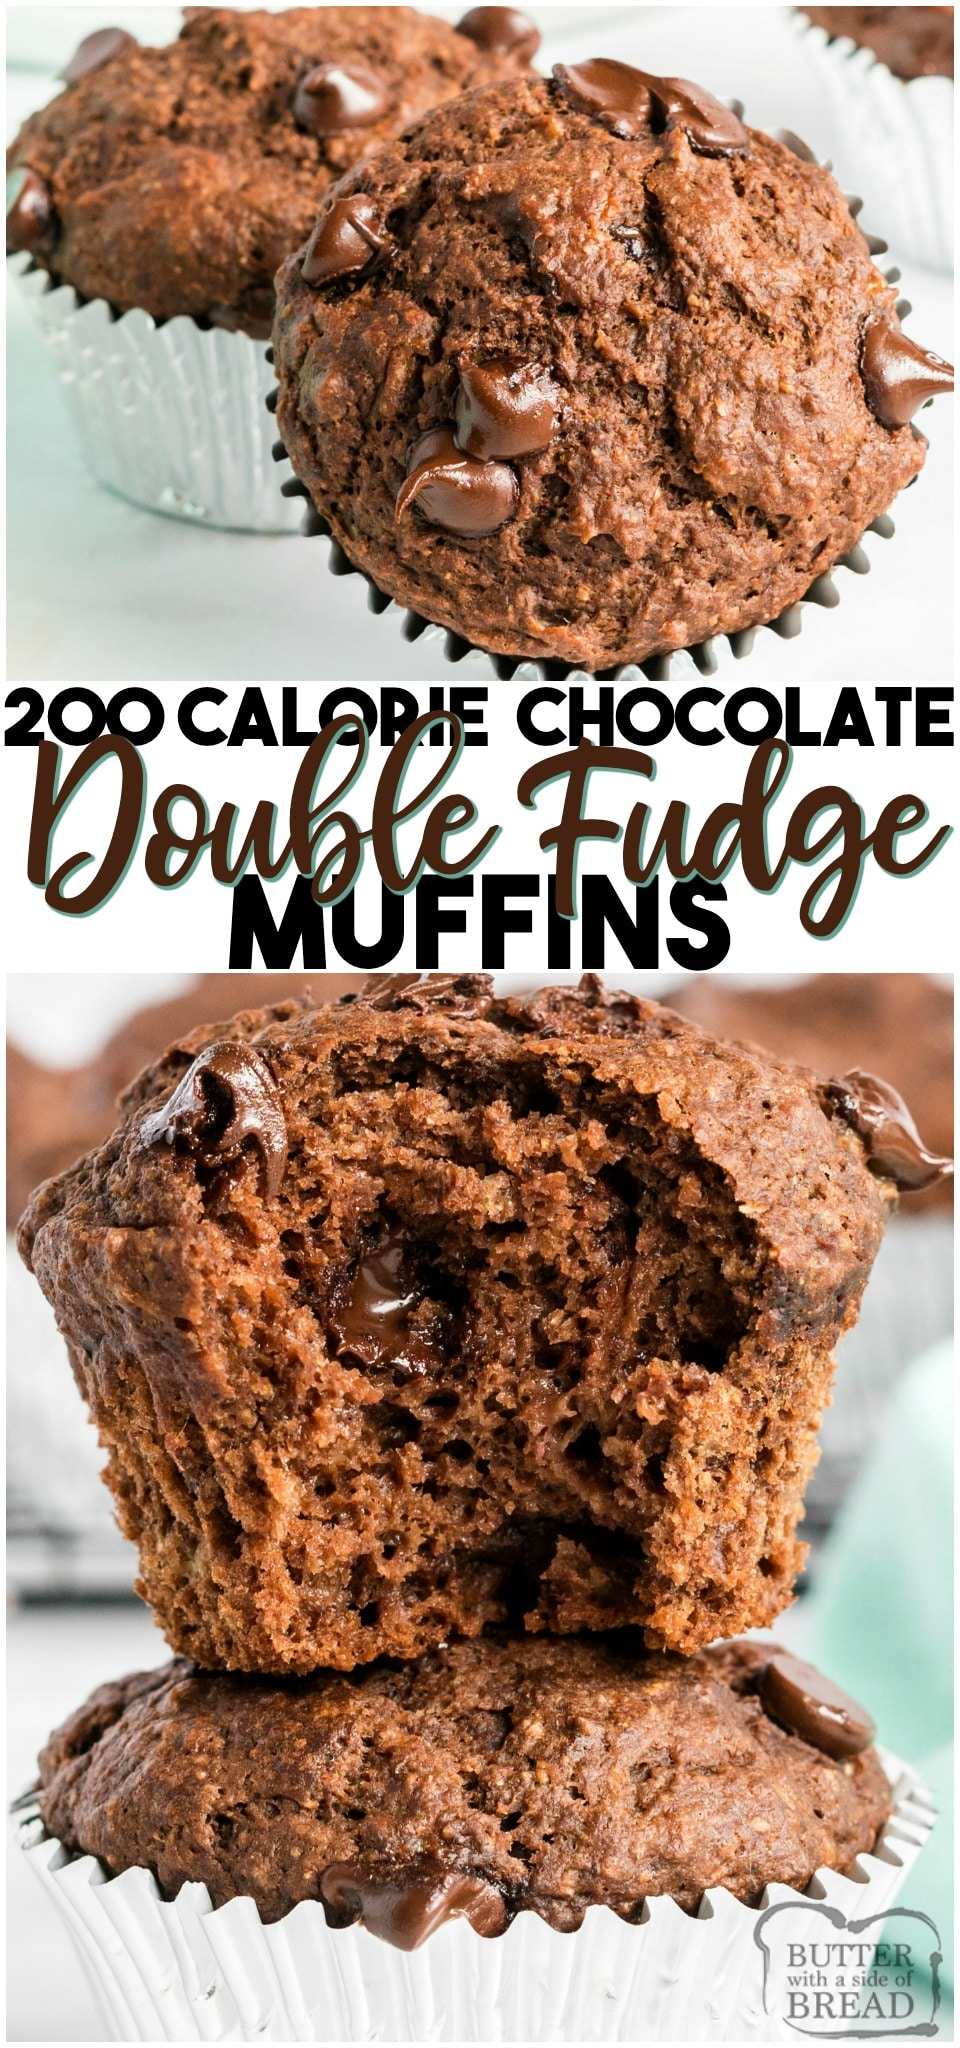 200 Calorie Double Fudge muffins made with applesauce, bananas, whole wheat flour, cocoa powder & chocolate chips! Perfect low-cal #muffin recipe for #chocolate lovers! #muffins #lowcal #lowcalorie #baking #breakfast #chocolatechips #recipe from BUTTER WITH A SIDE OF BREAD